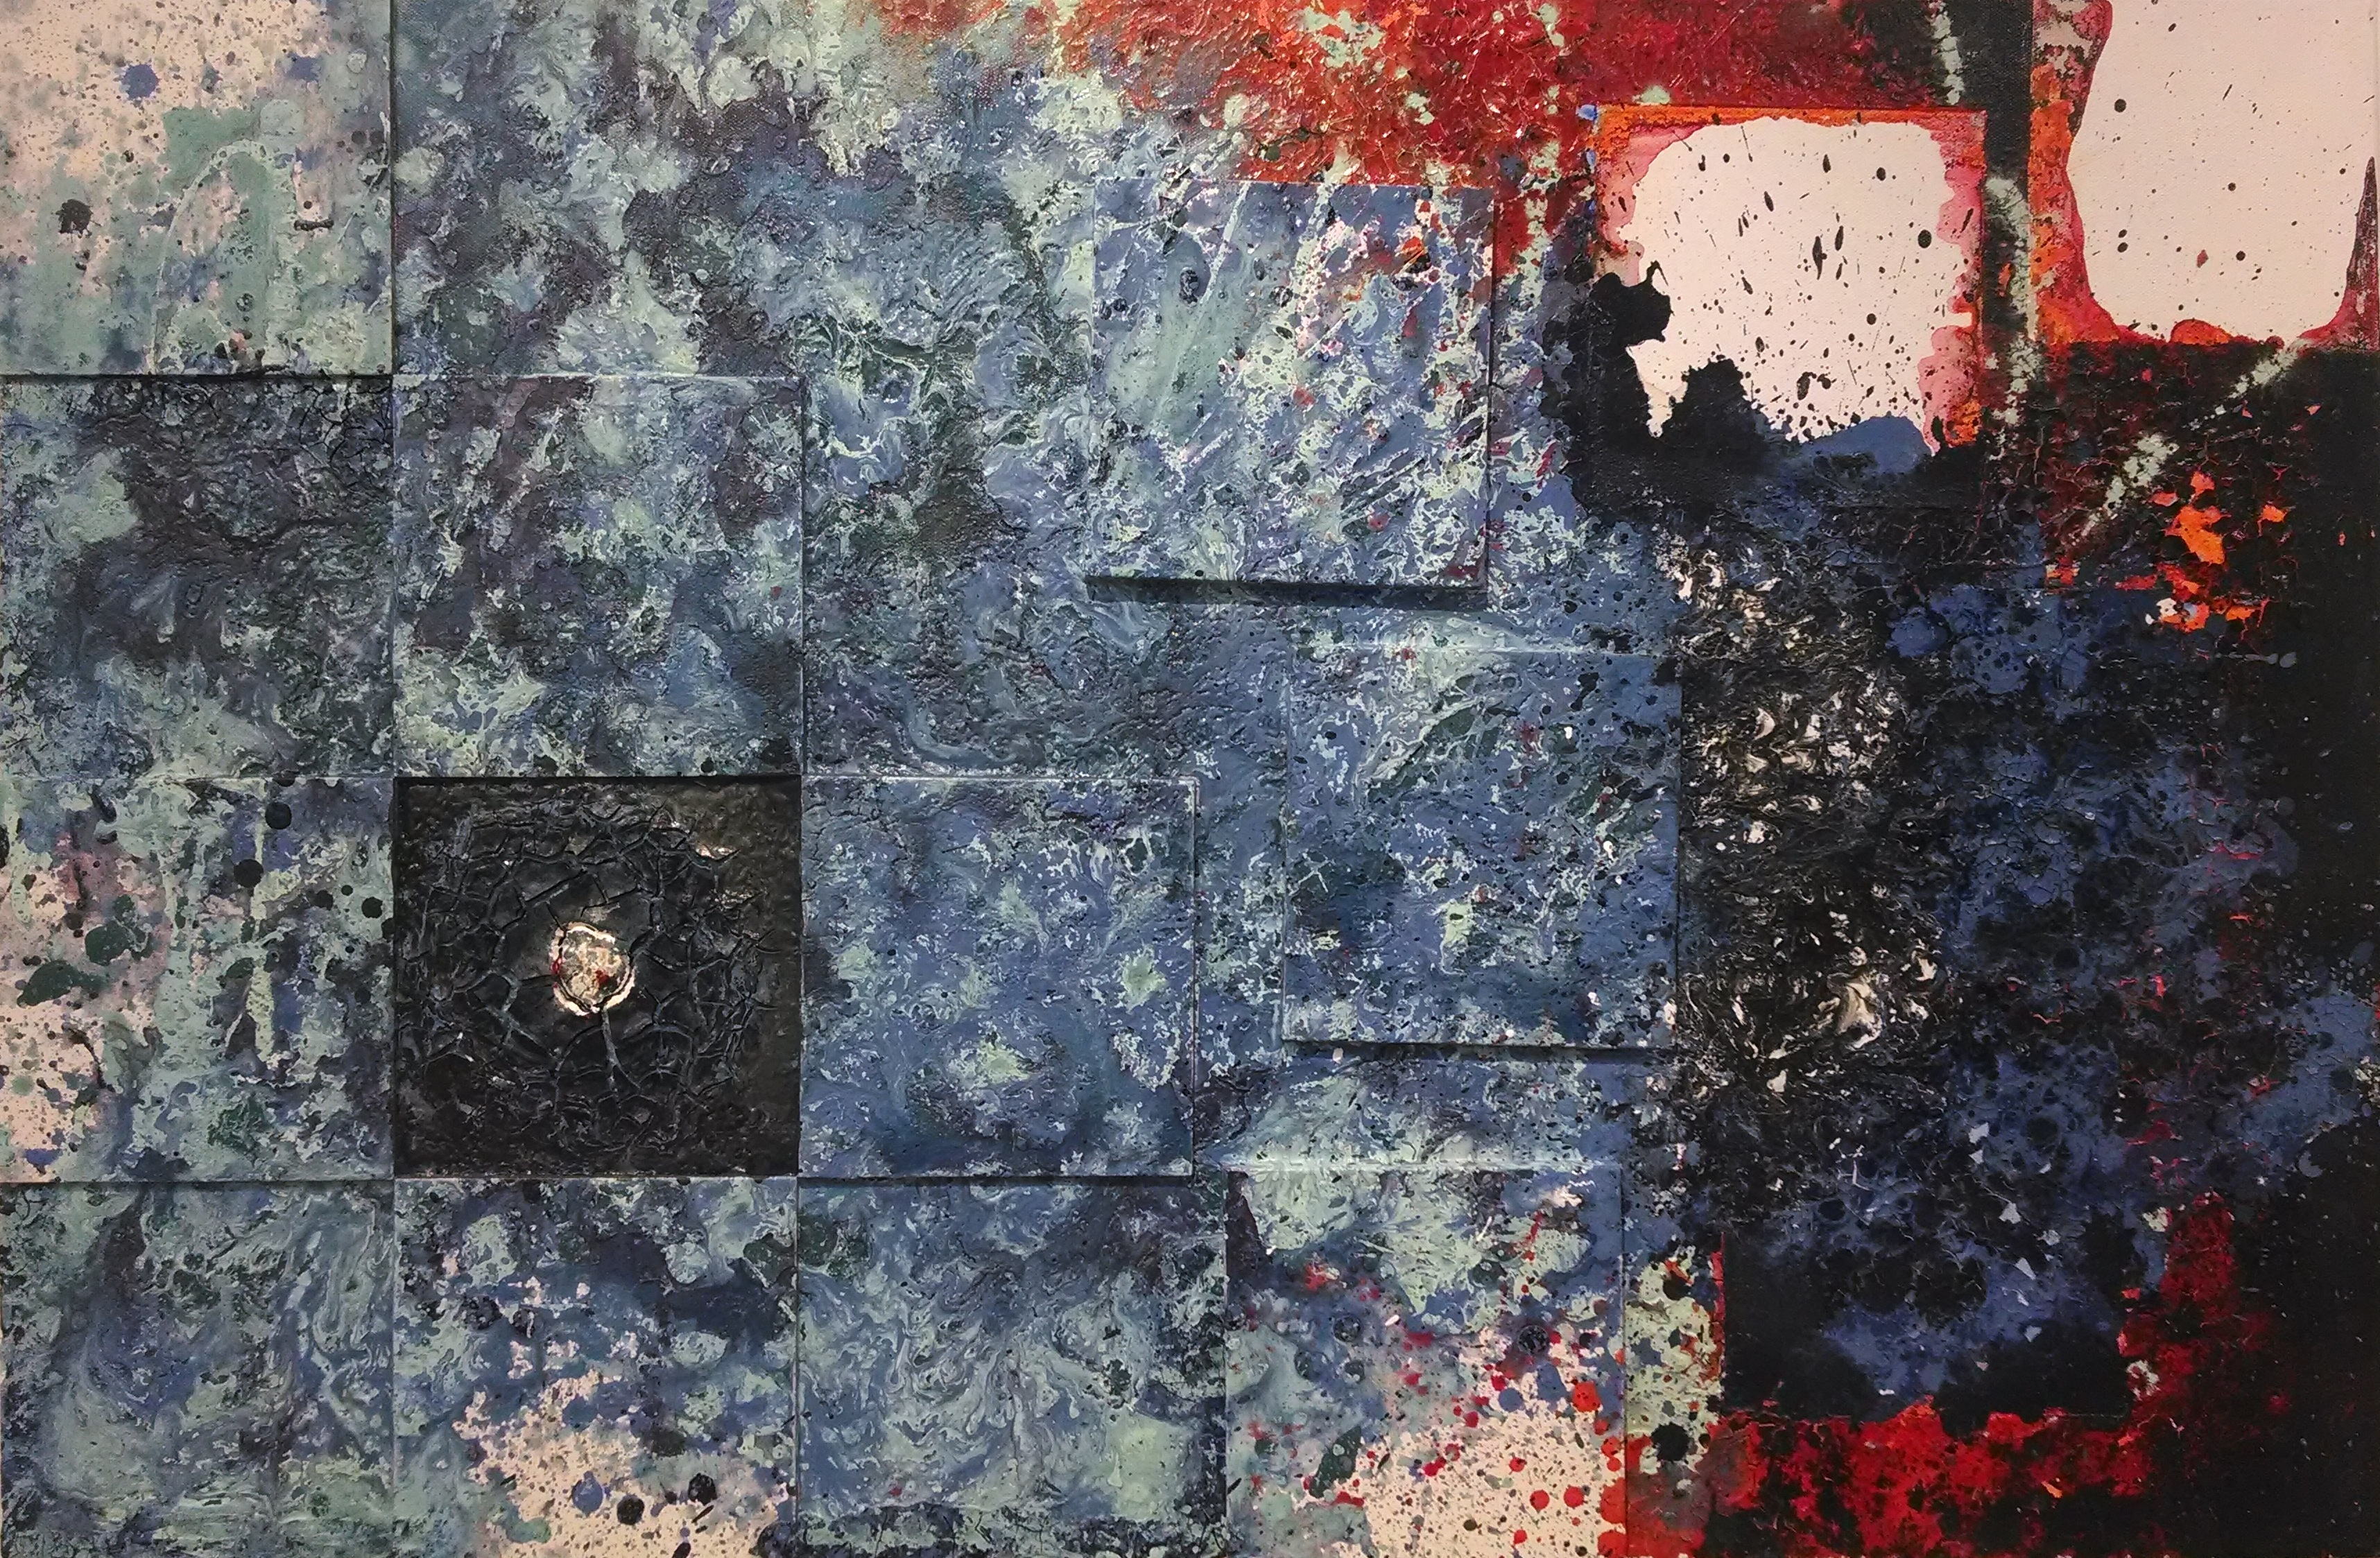 The Explosive Creationism of Squares